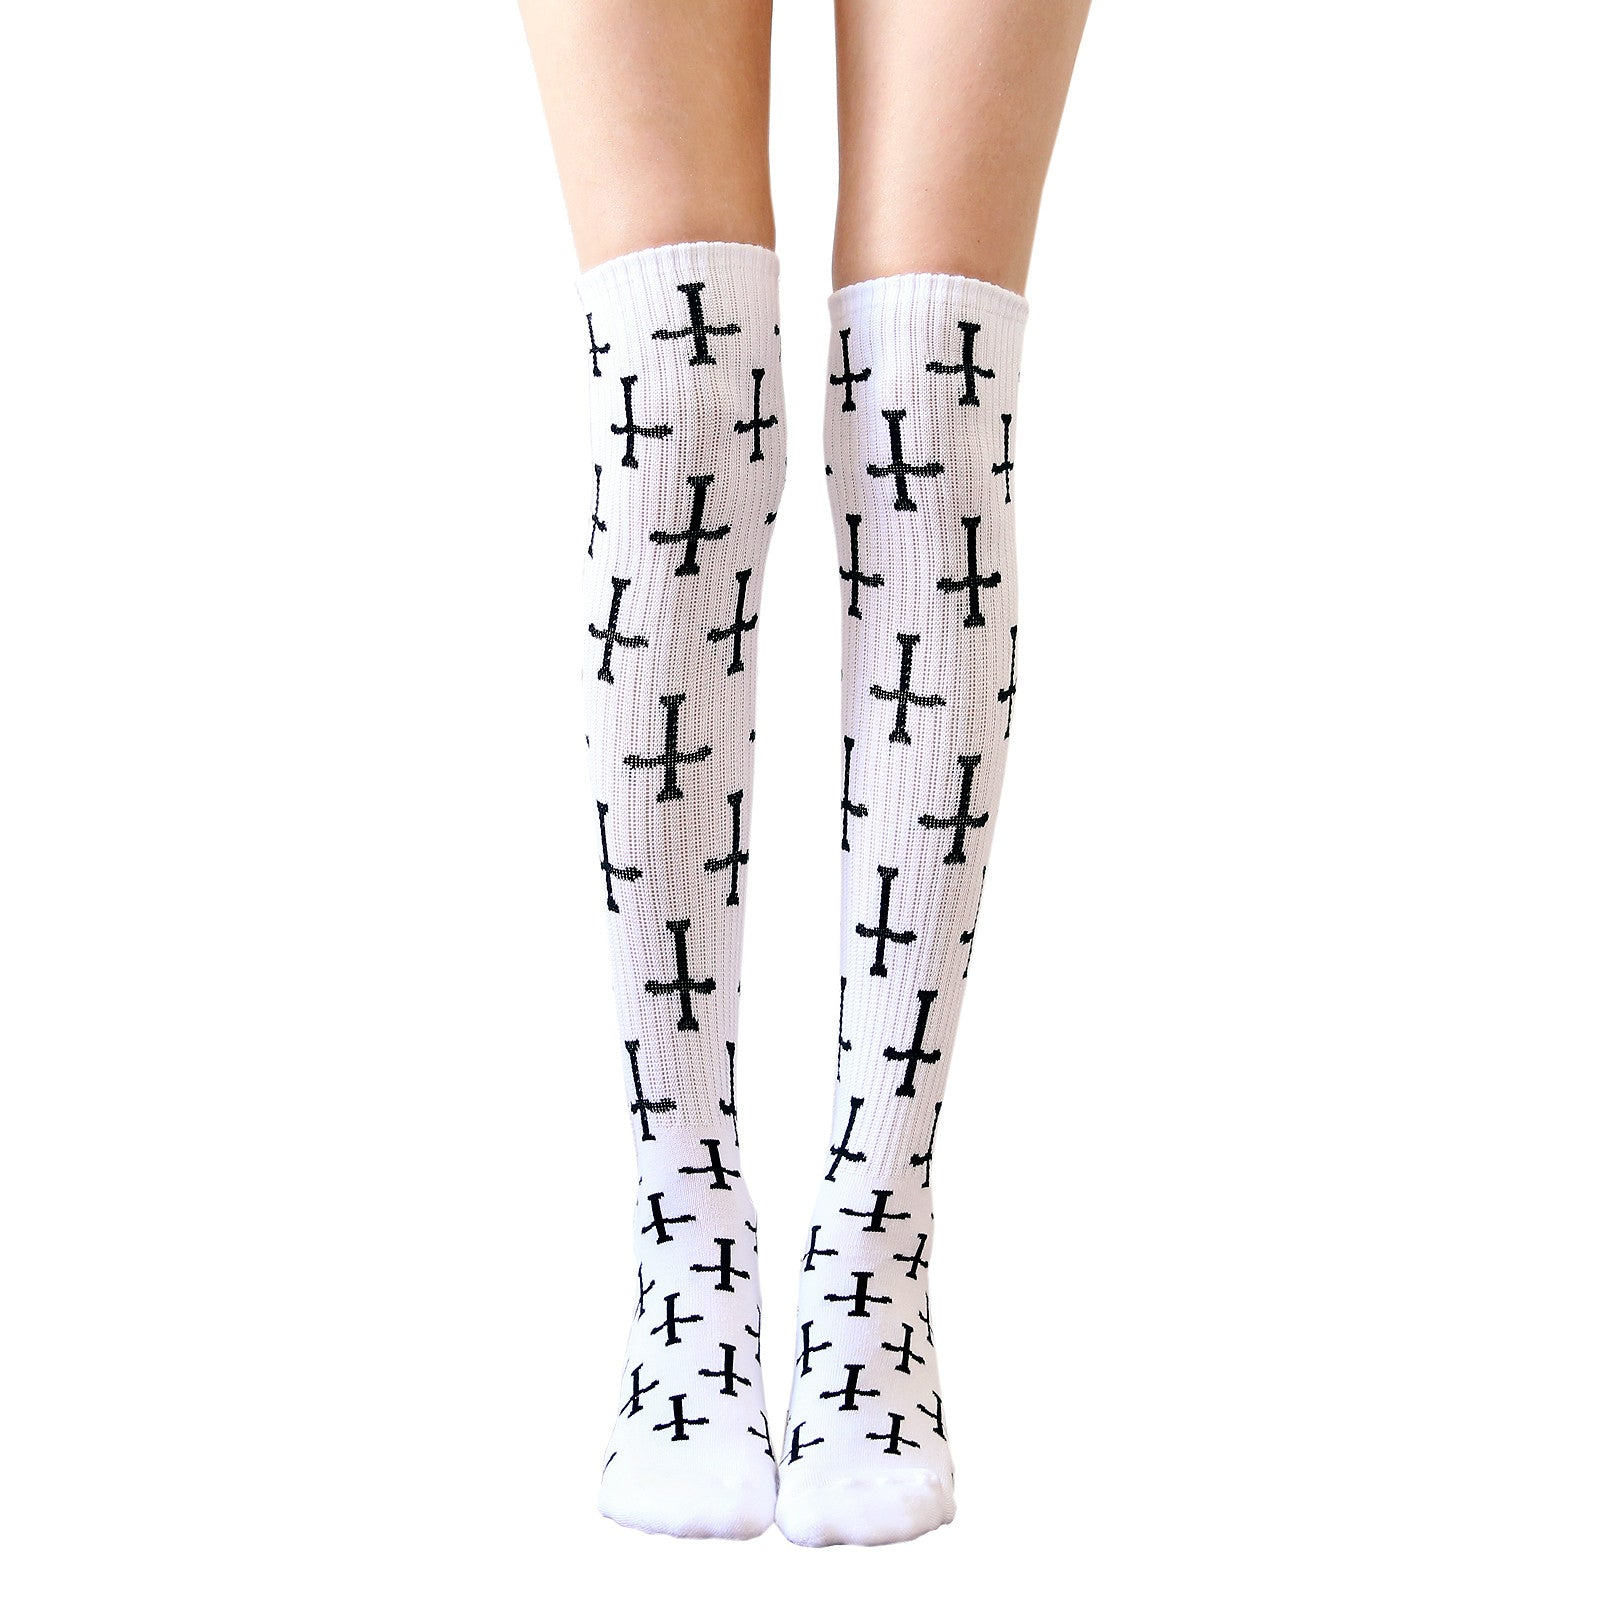 UNHOLY KNEE HIGH SOCKS